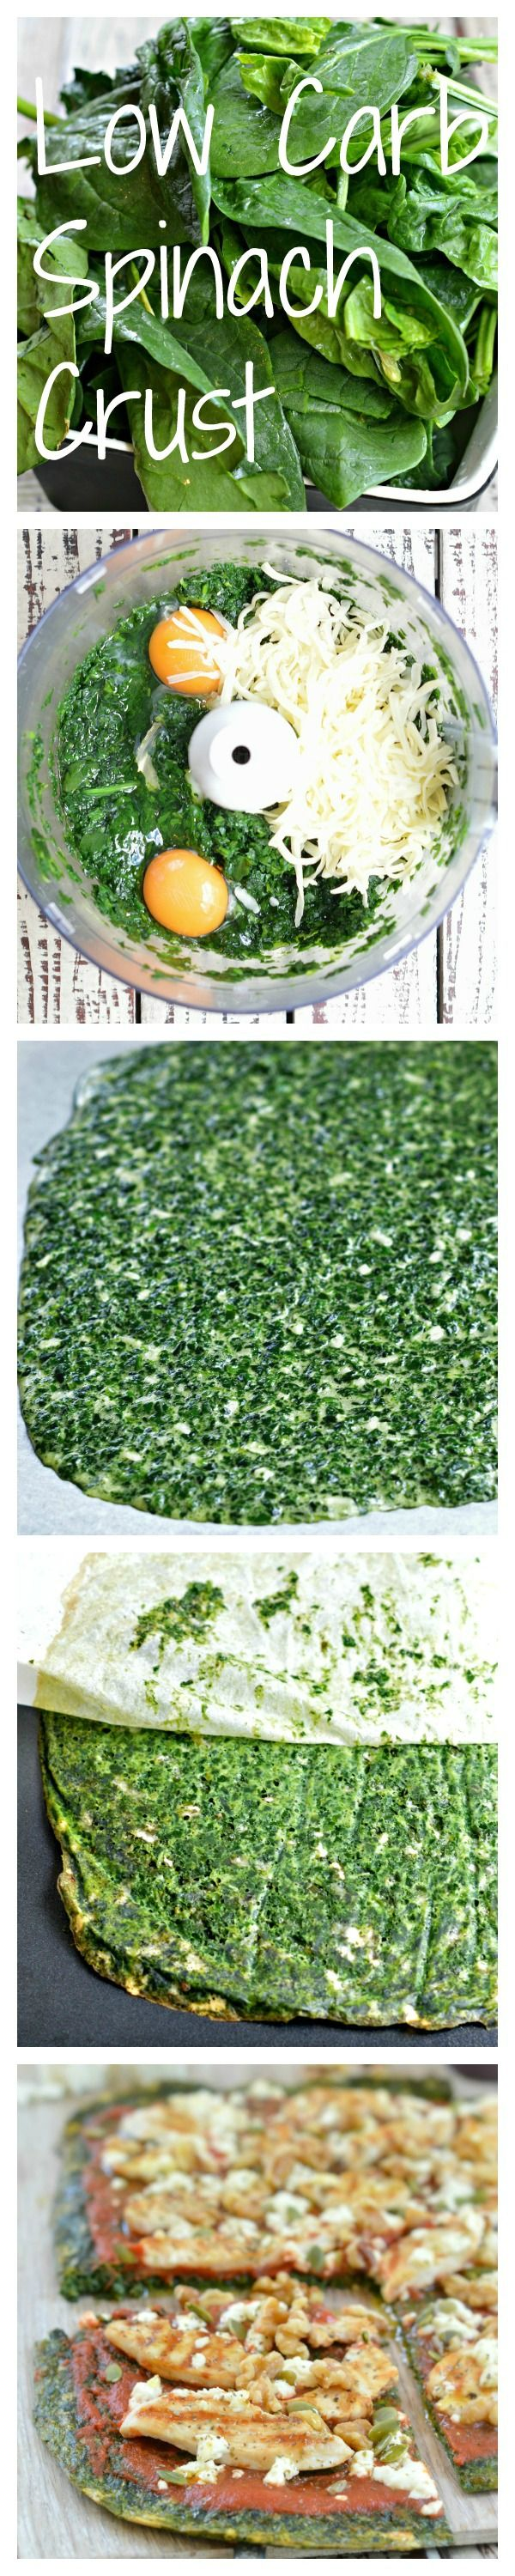 Low Carb Spinach Pizza Crust. A Paleo Pizza Crust free from gluten and flour. By www.sweetashoney.co.nz